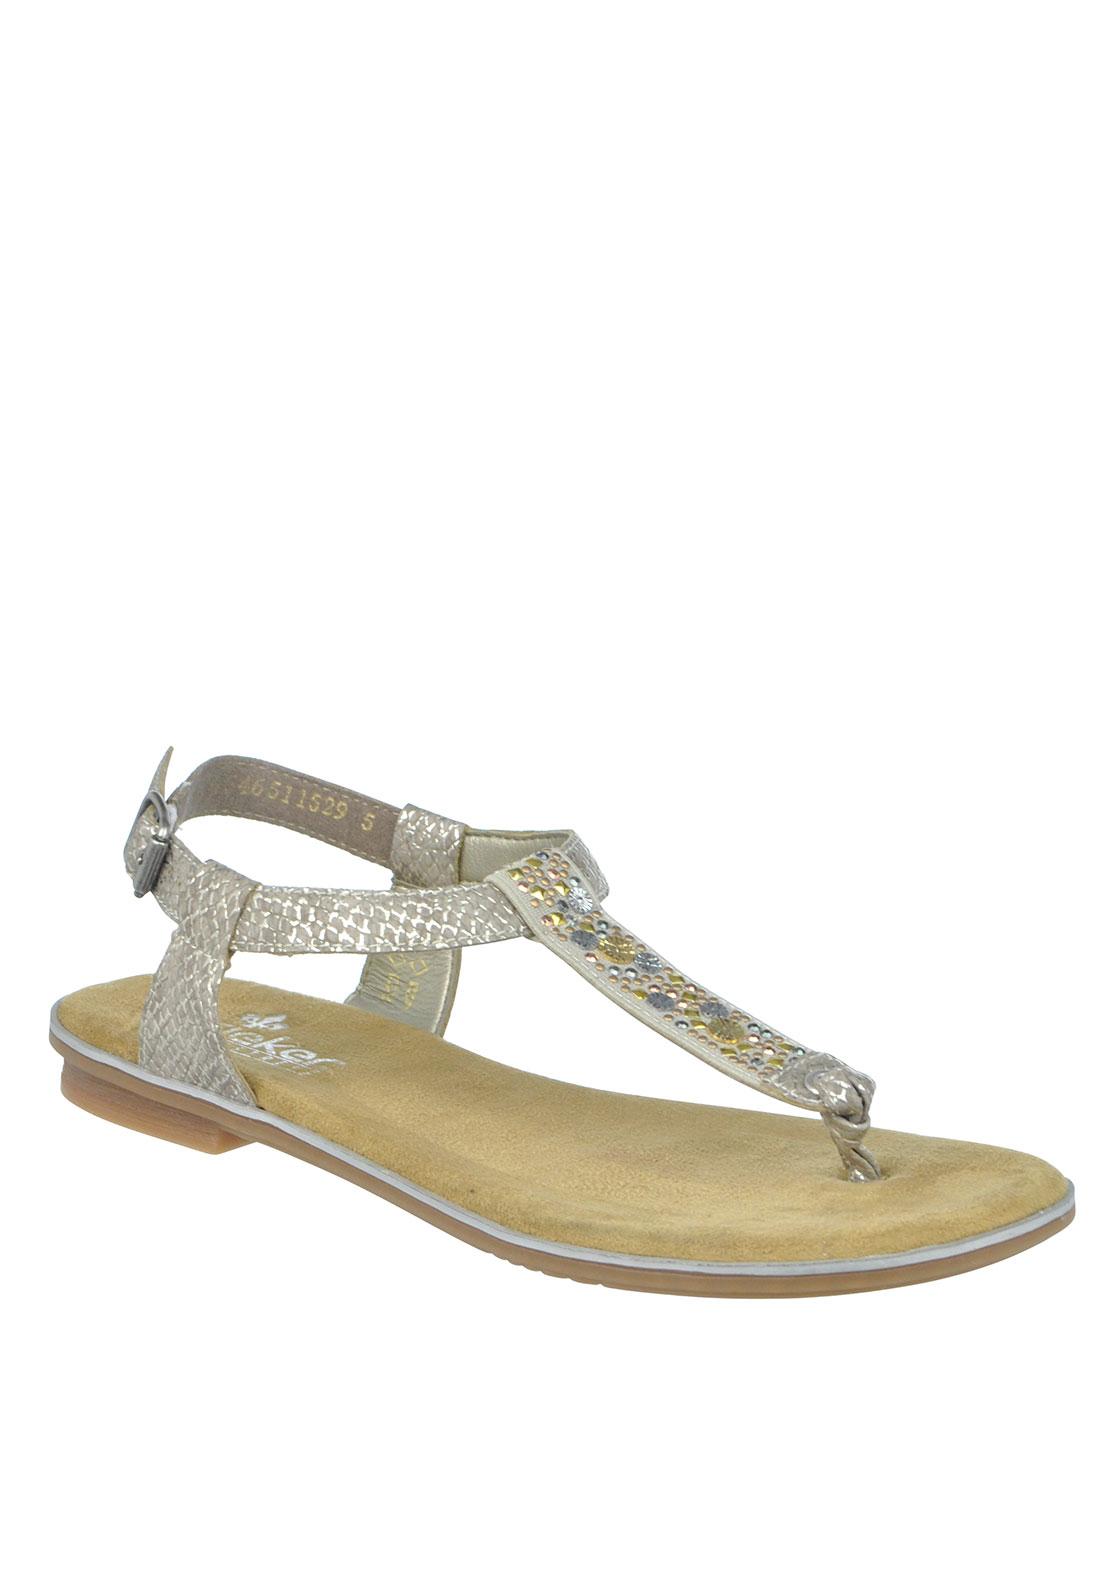 Rieker Womens Embellished Toe Thong Sandals, Grey